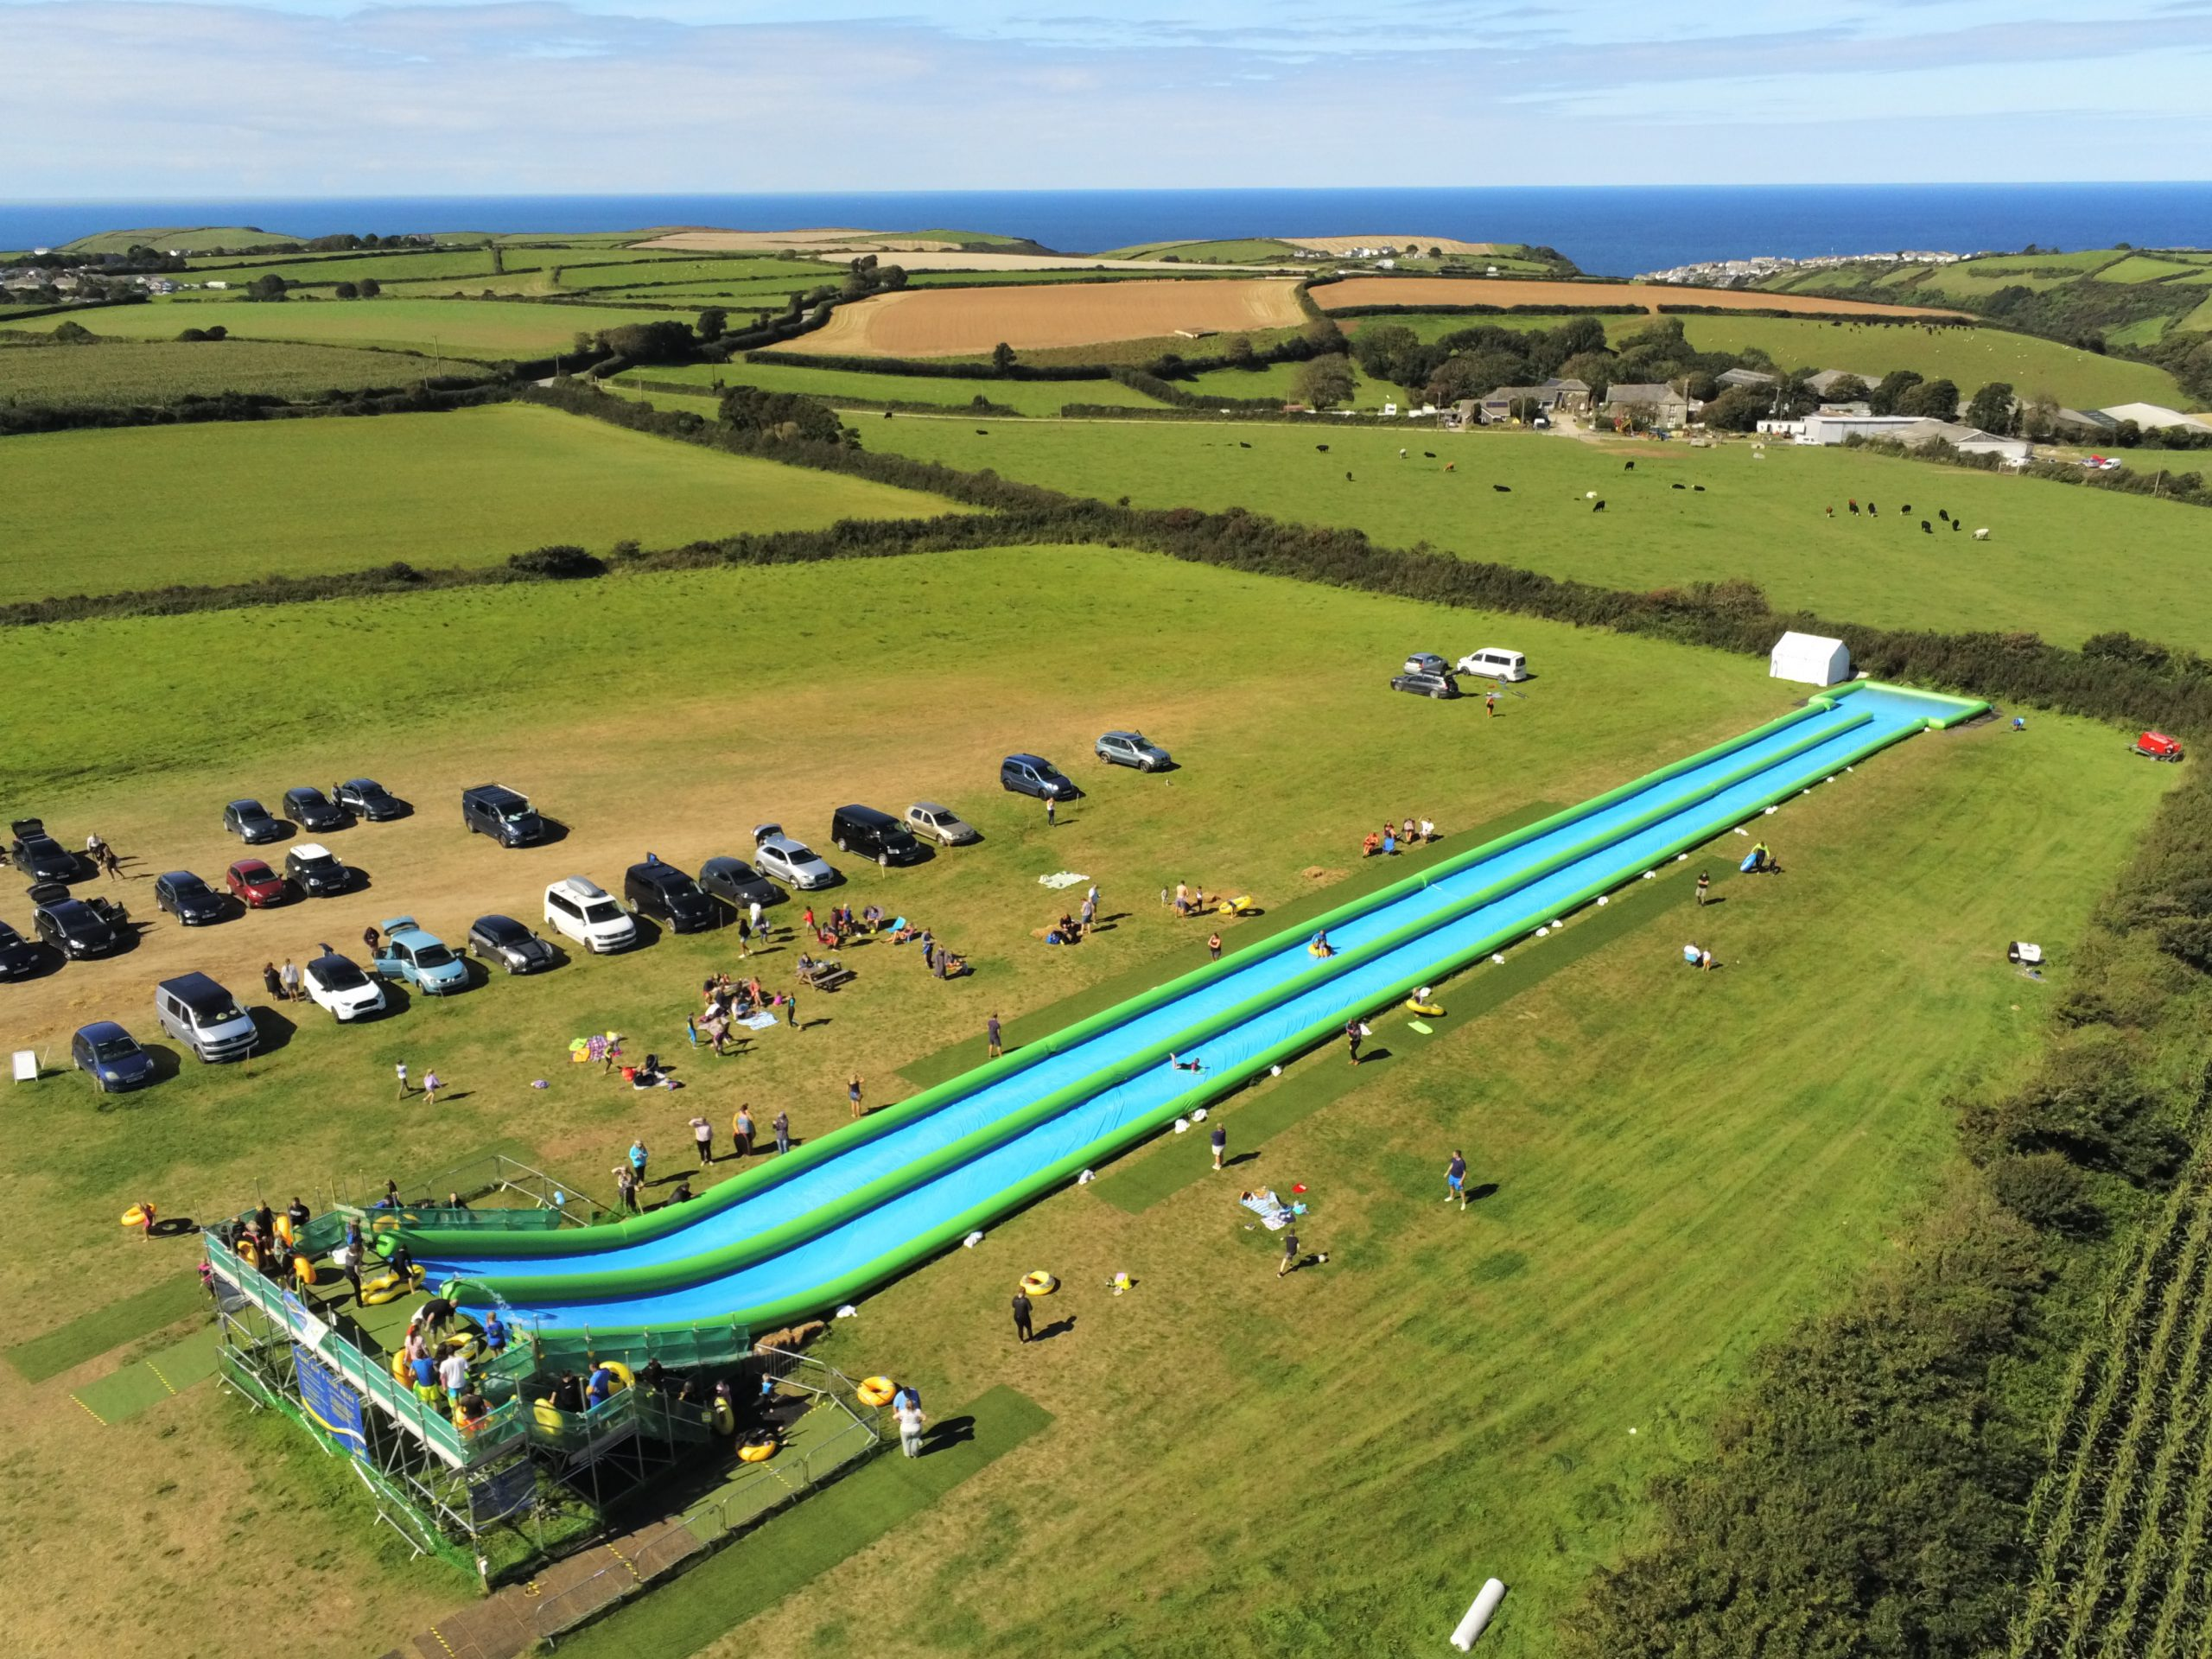 7 Outdoor Activities and Attractions in Cornwall this Summer